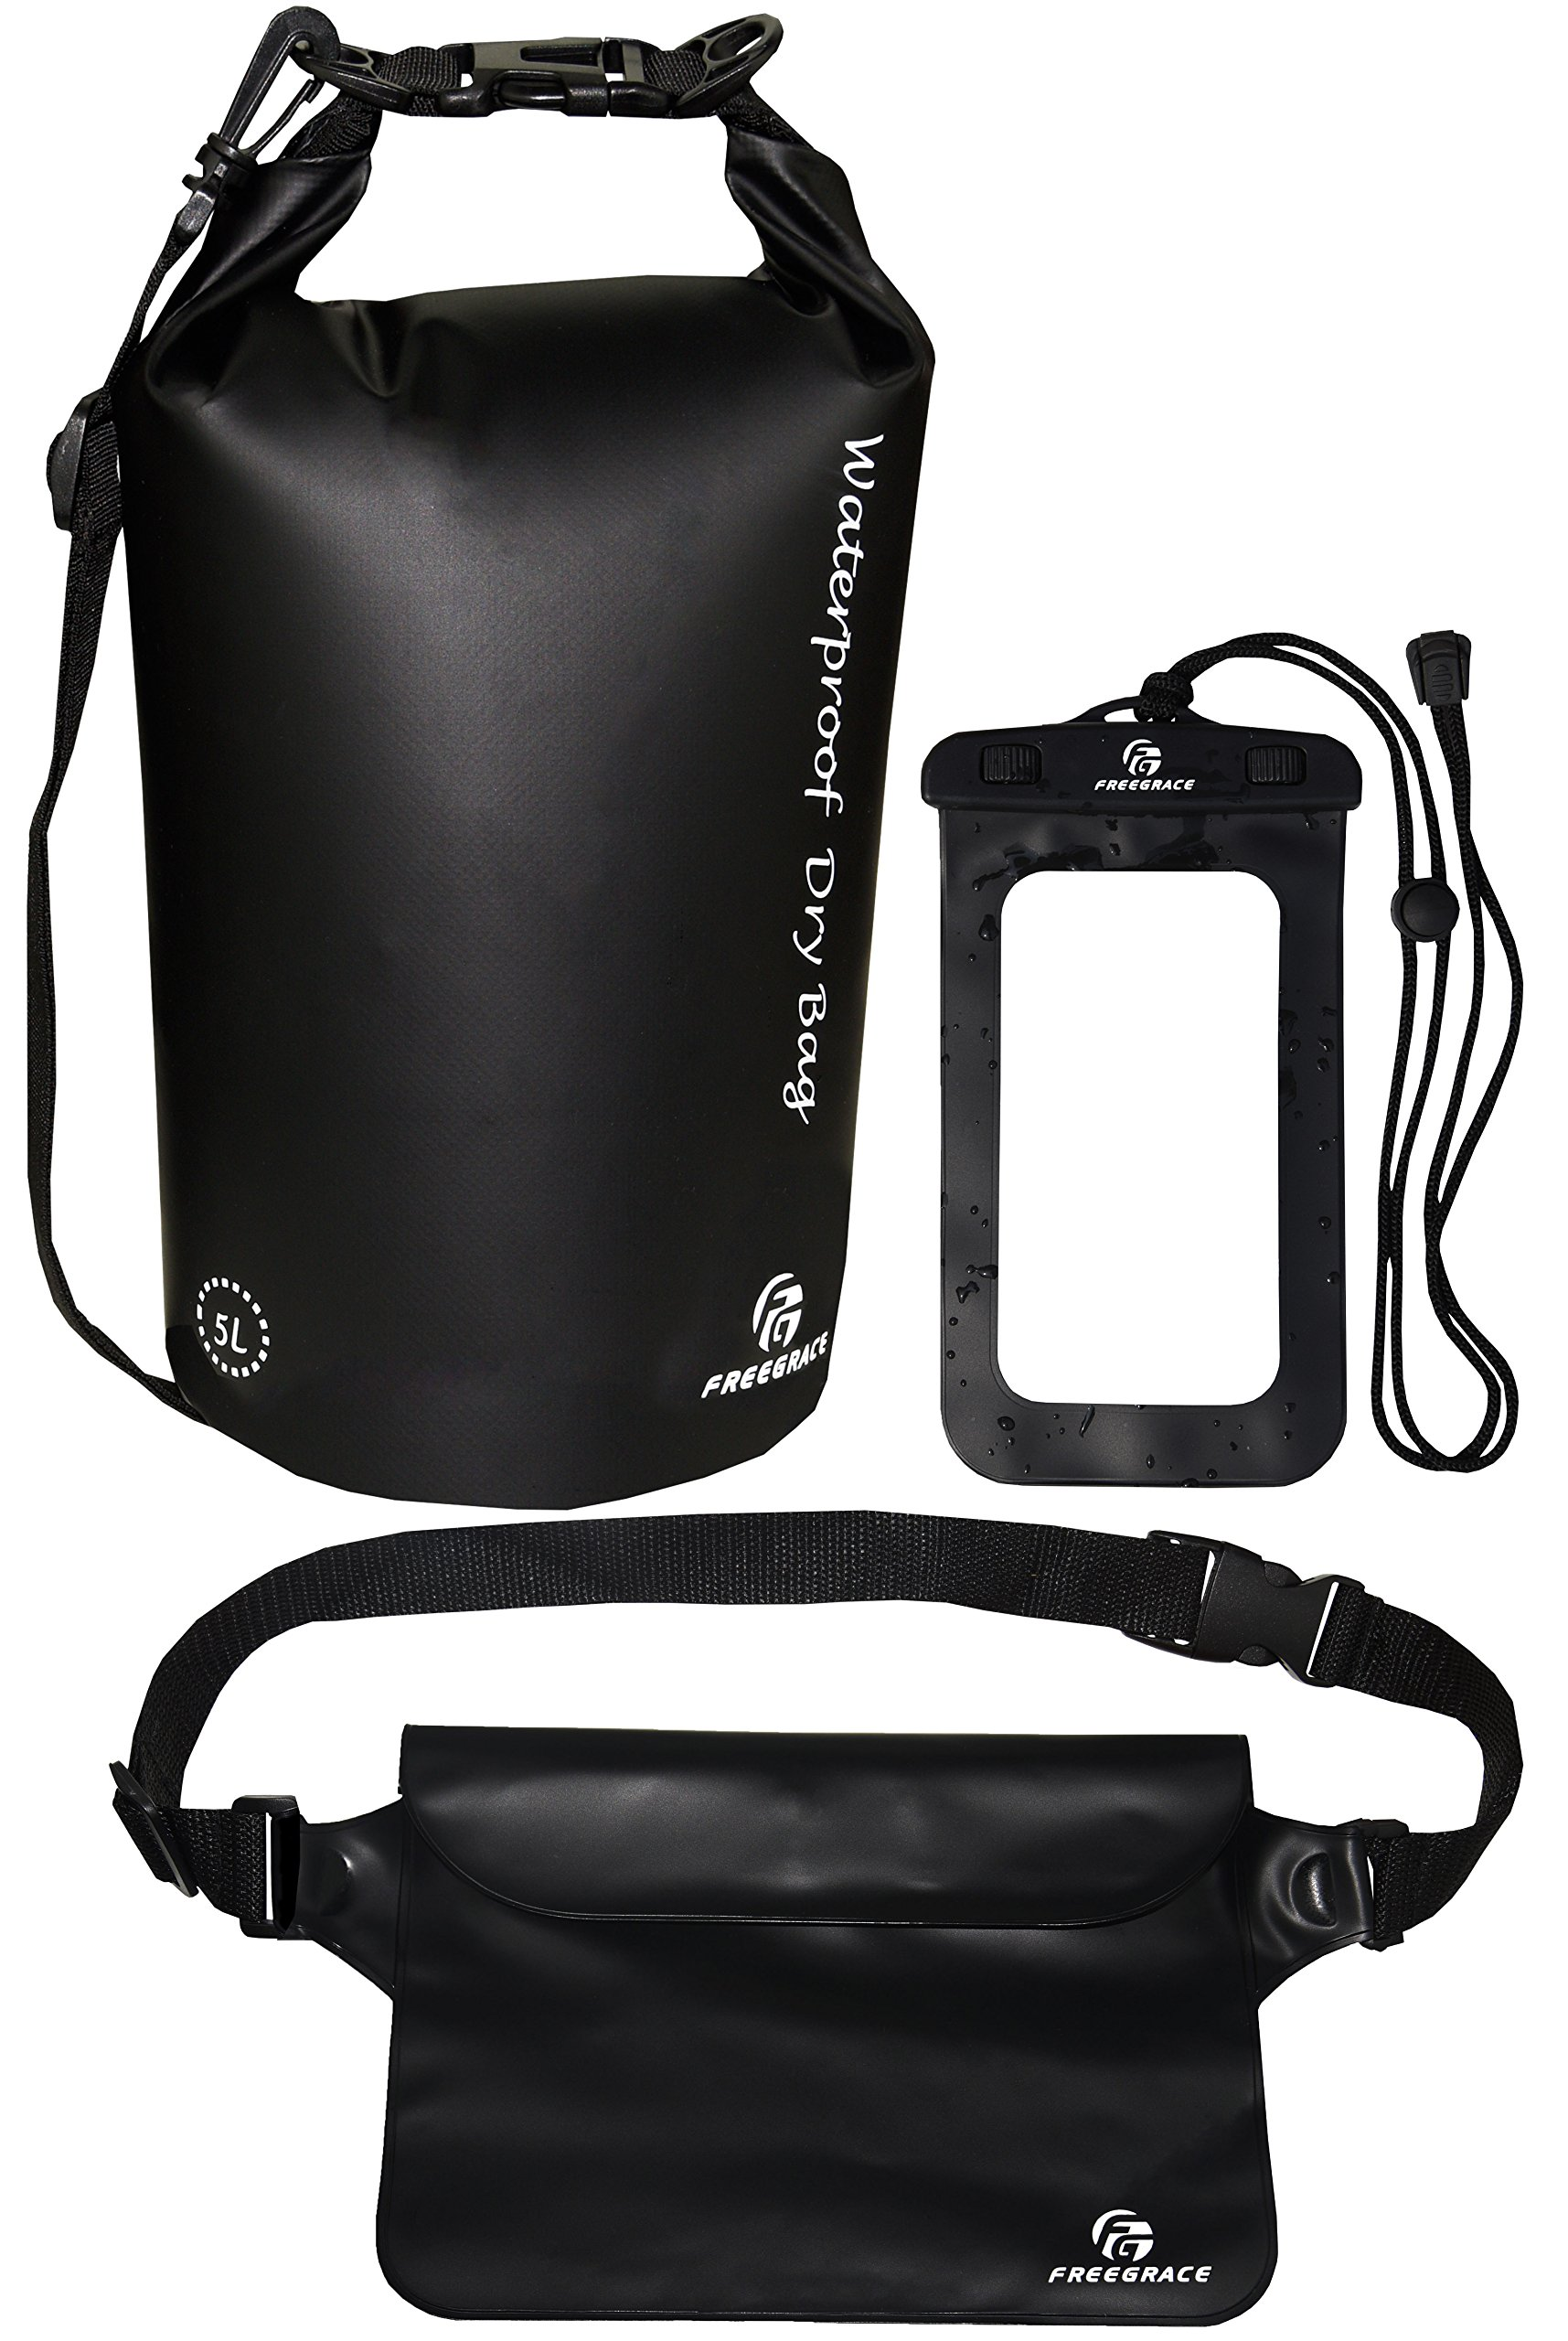 Freegrace Waterproof Dry Bags Set of 3 Dry Bag with 2 Zip Lock Seals & Detachable Shoulder Strap, Waist Pouch & Phone Case - Can Be Submerged Into Water - for Swimming (Black, 5L)